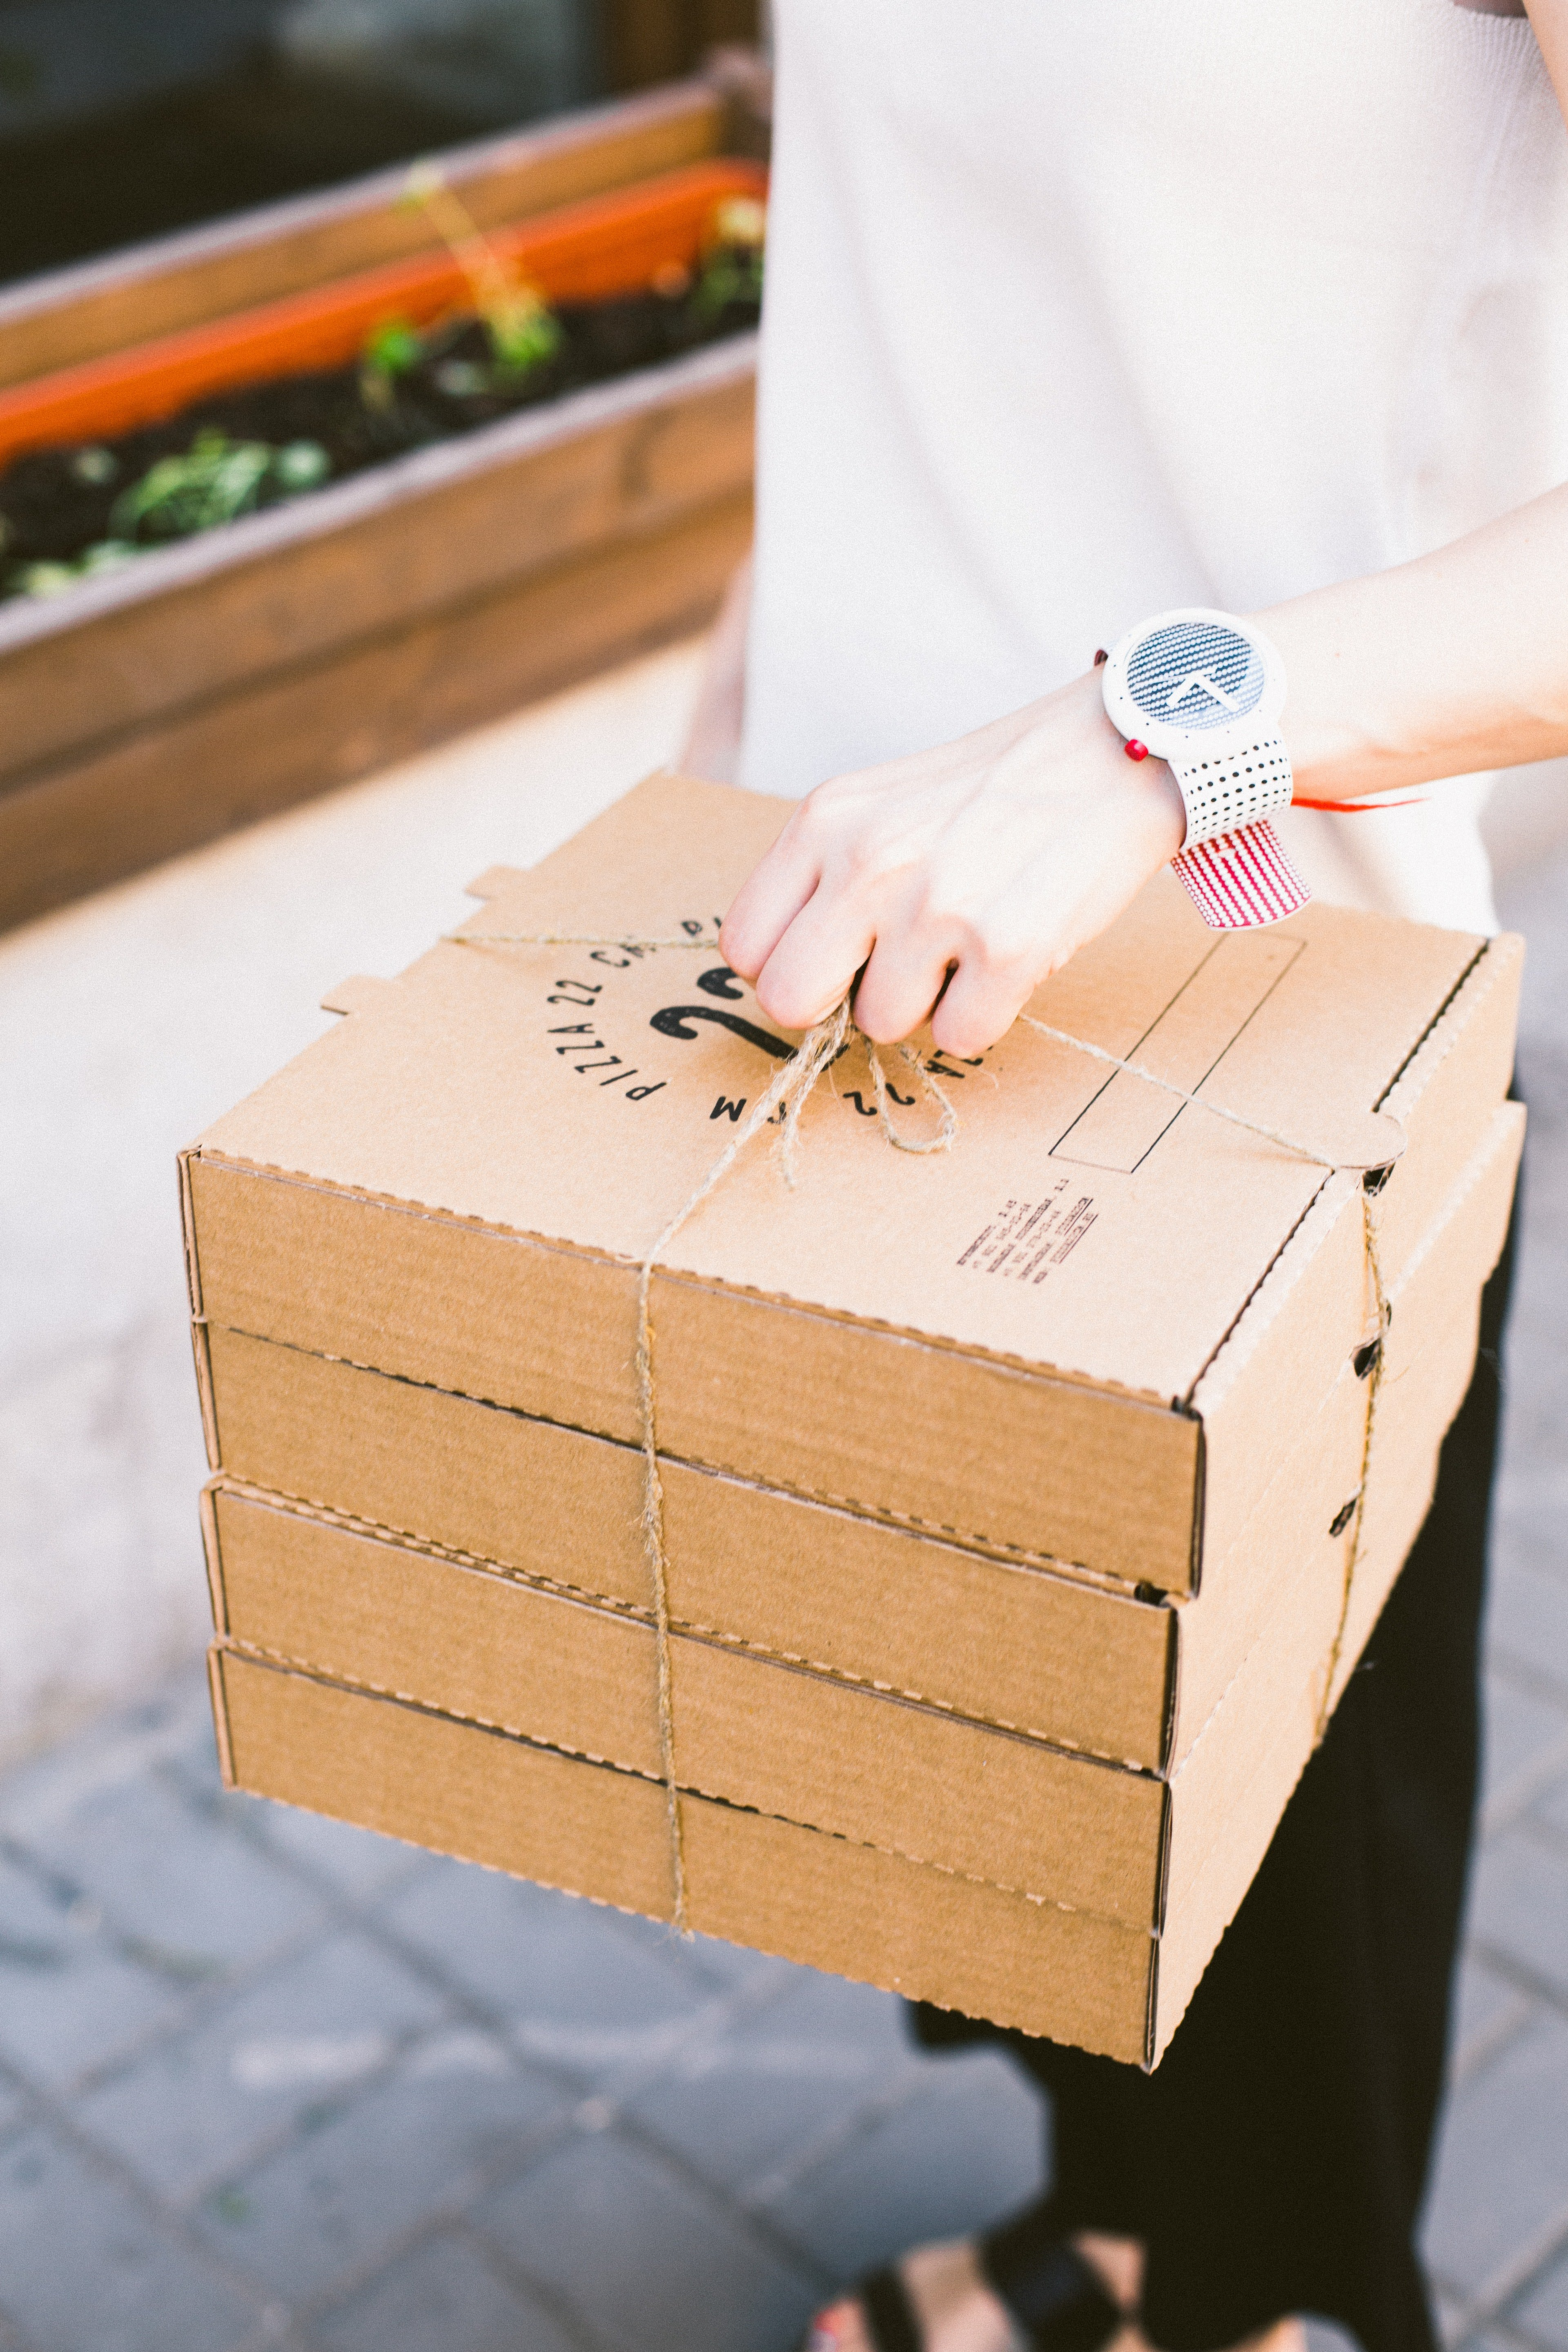 Person in a white shirt holding a stack of pizza boxes | Photo: Pexels